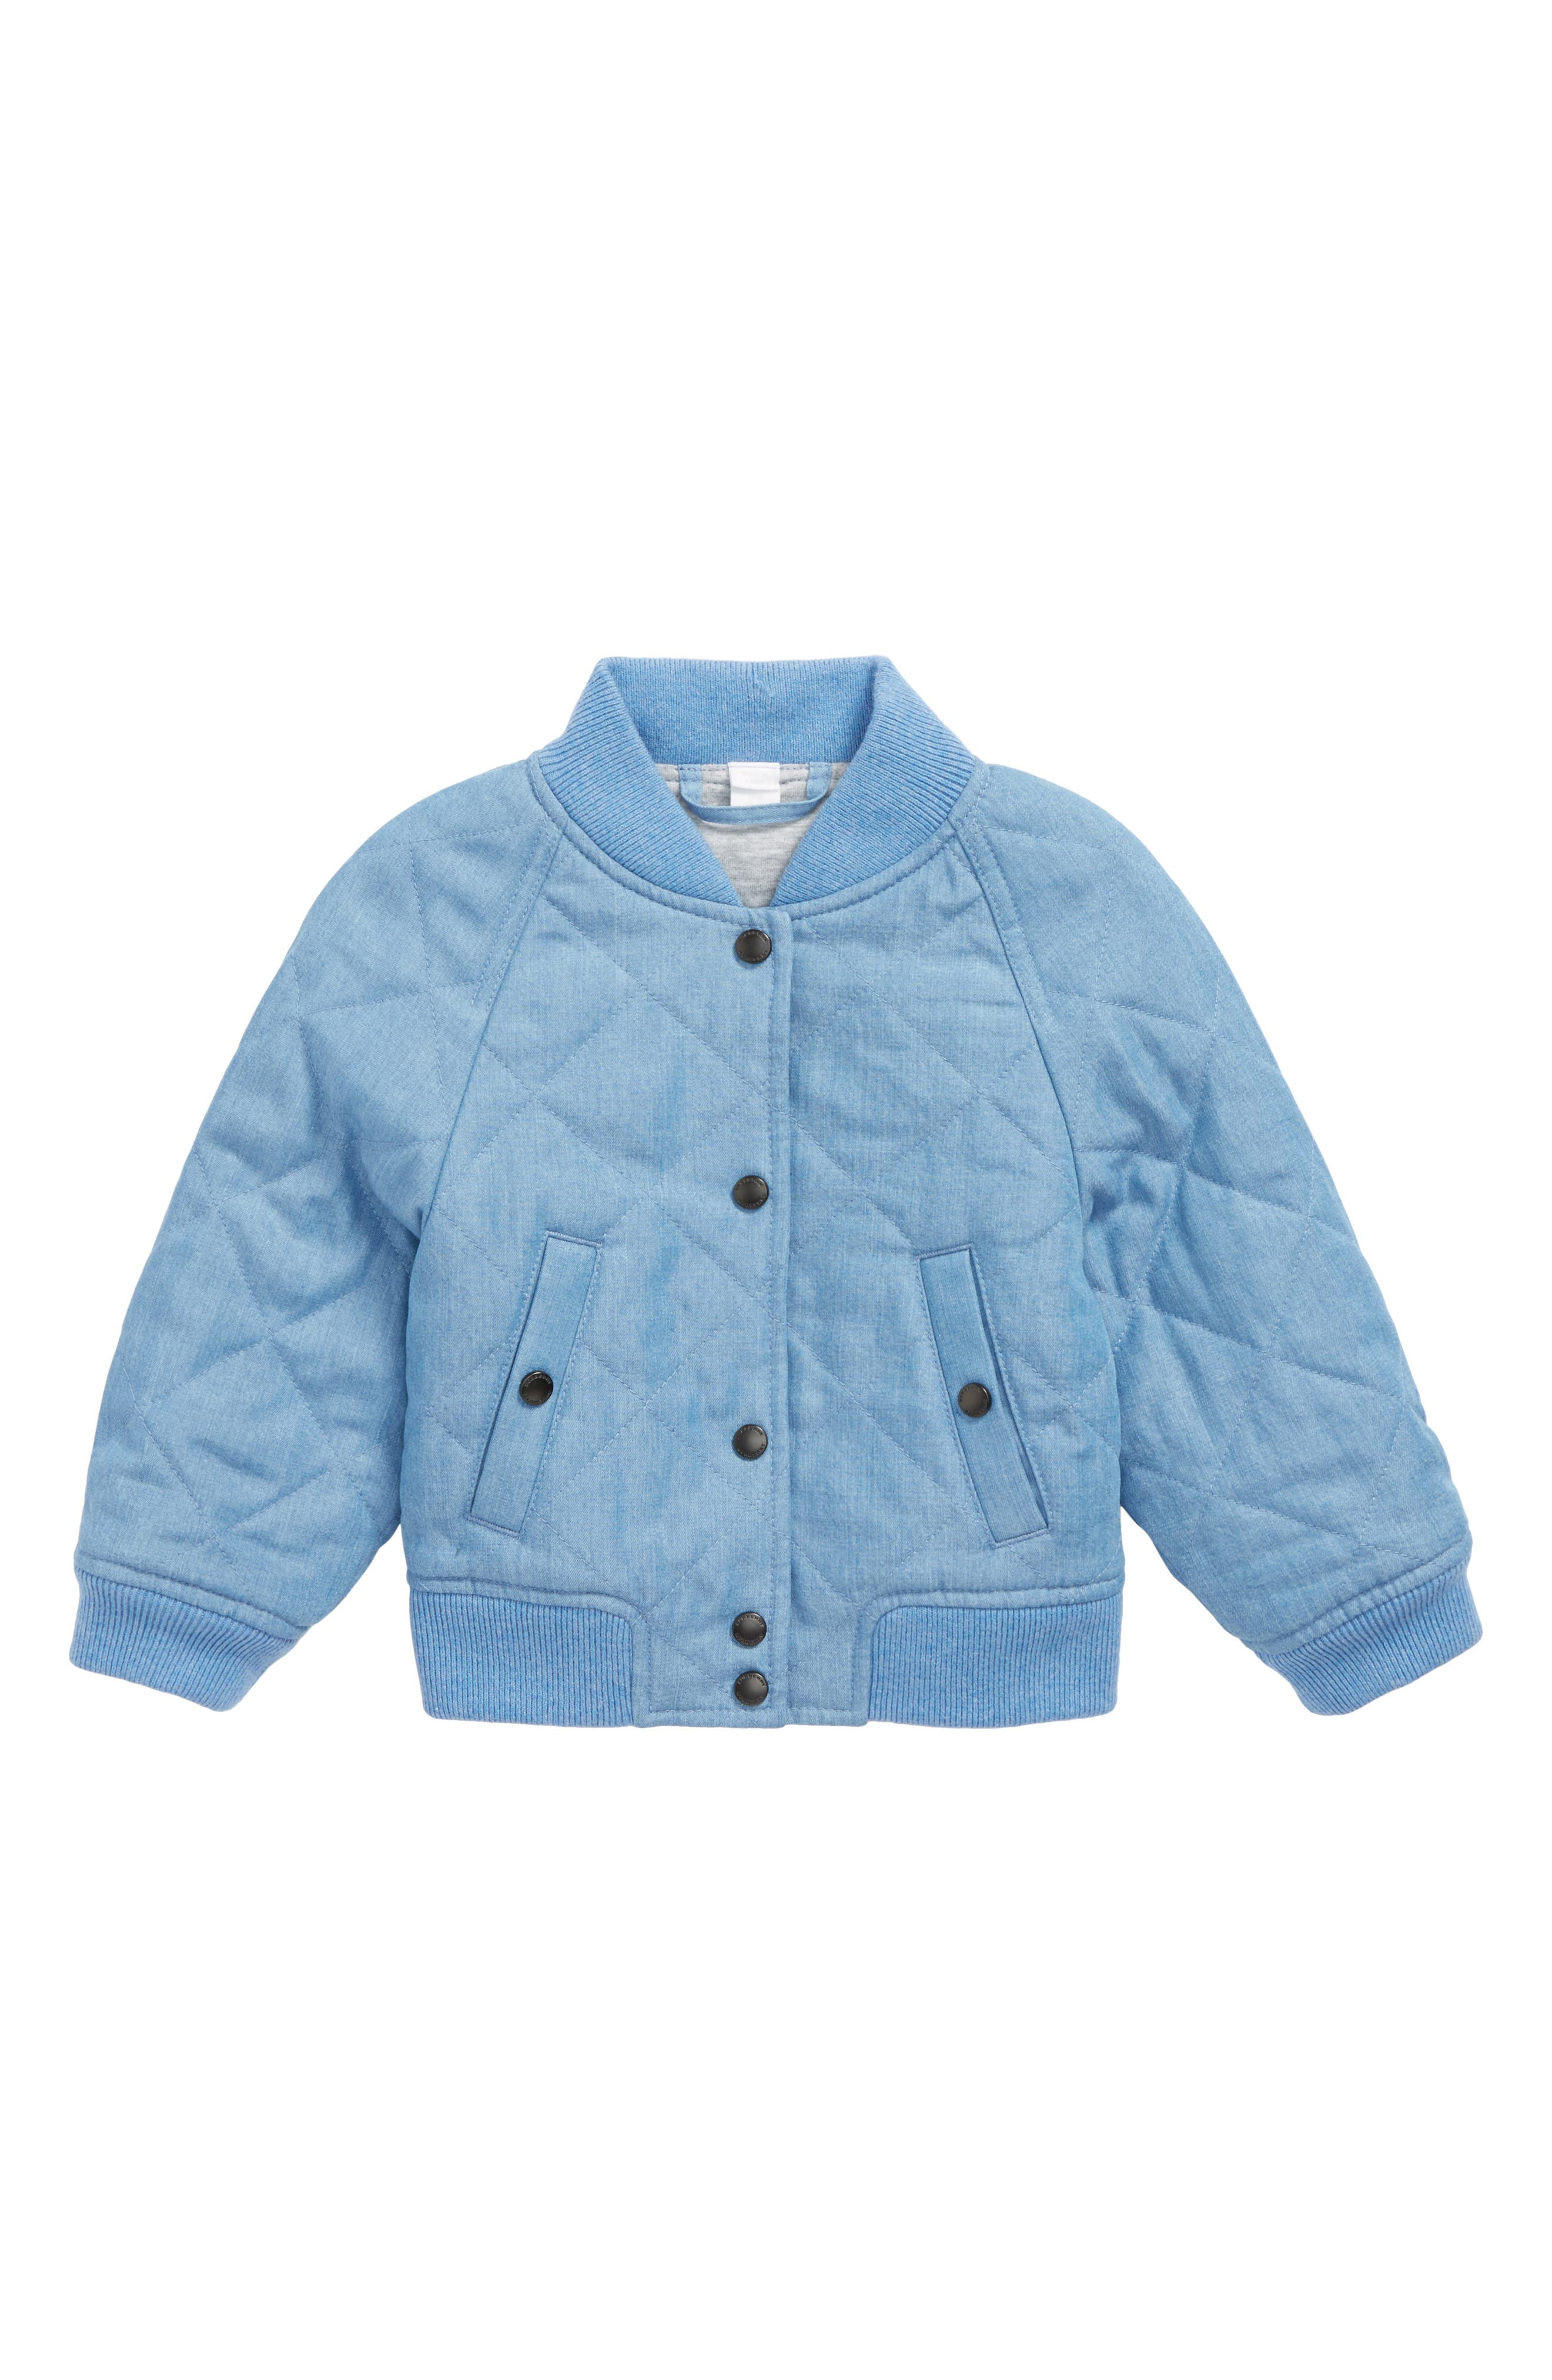 Joelle Denim Quilted Bomber Jacket,                             Main thumbnail 1, color,                             409